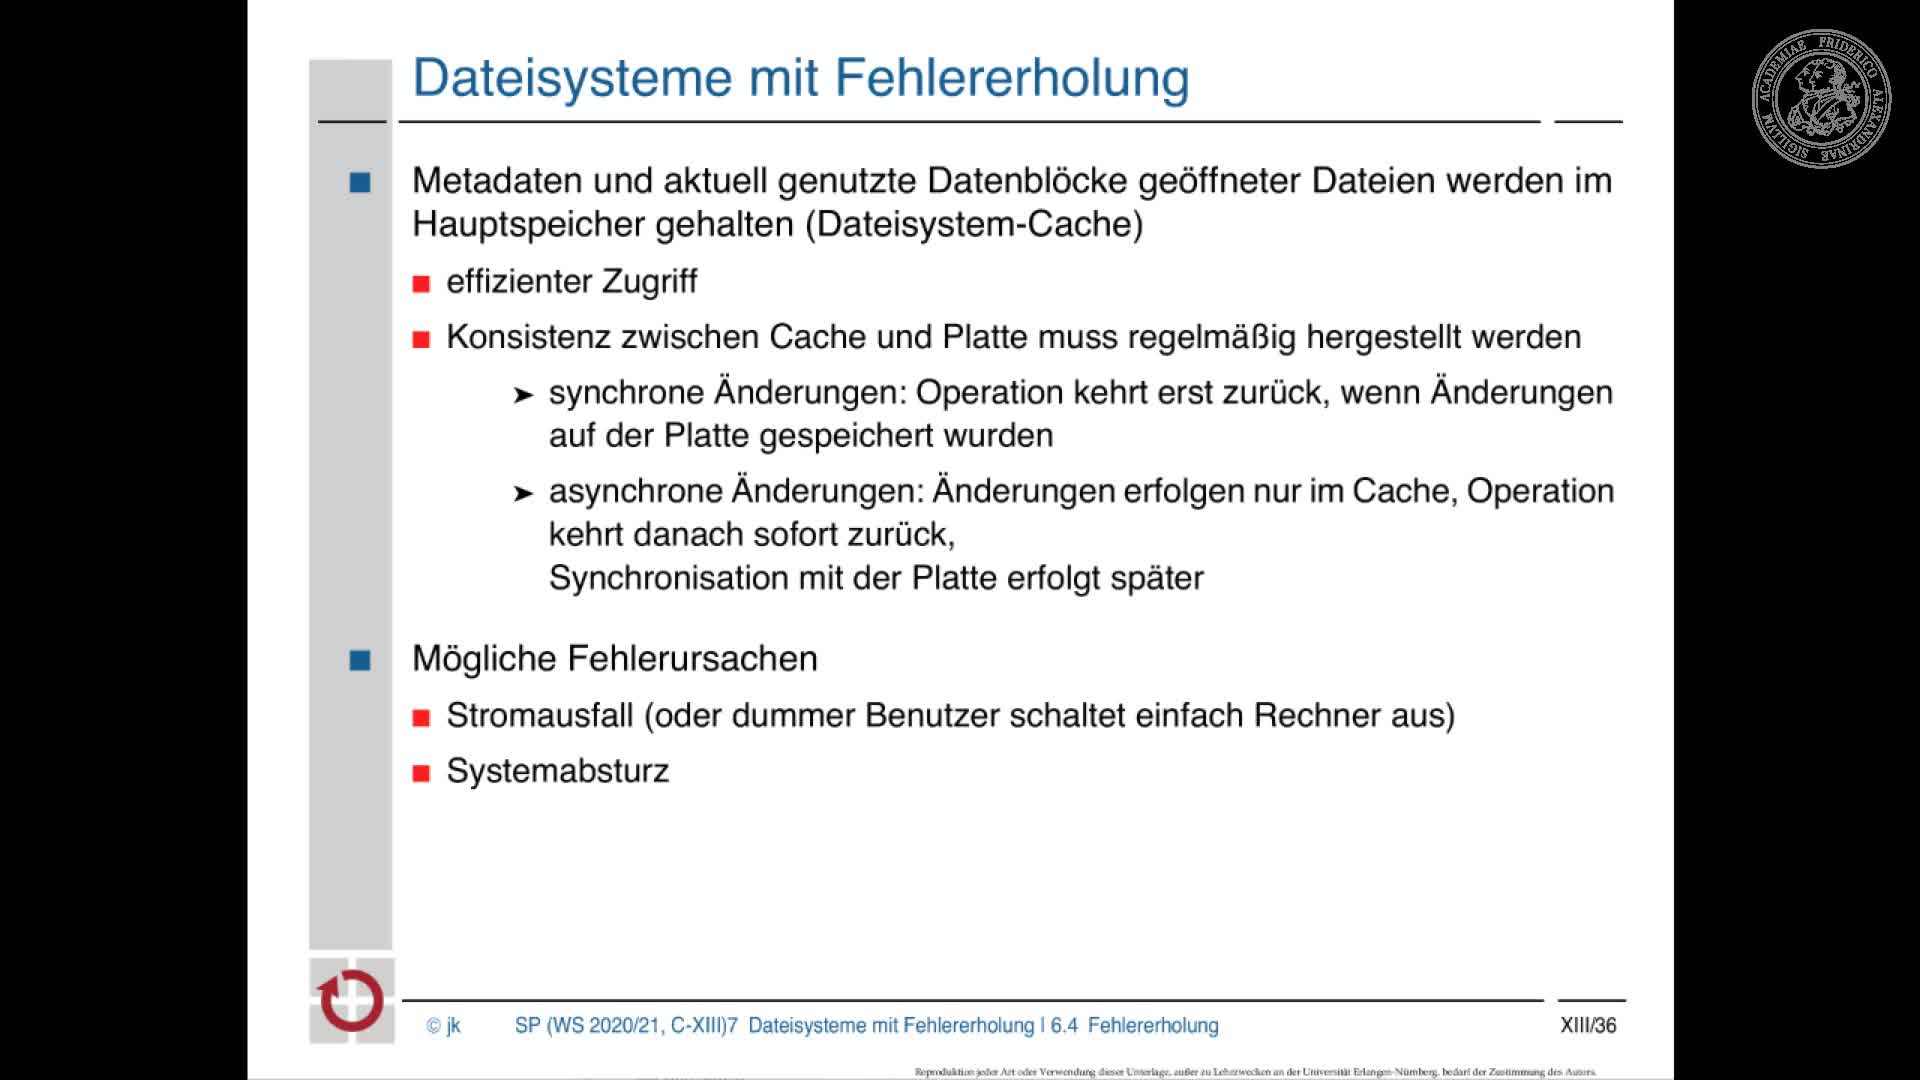 2.2. Dateisysteme mit Fehlererholung preview image